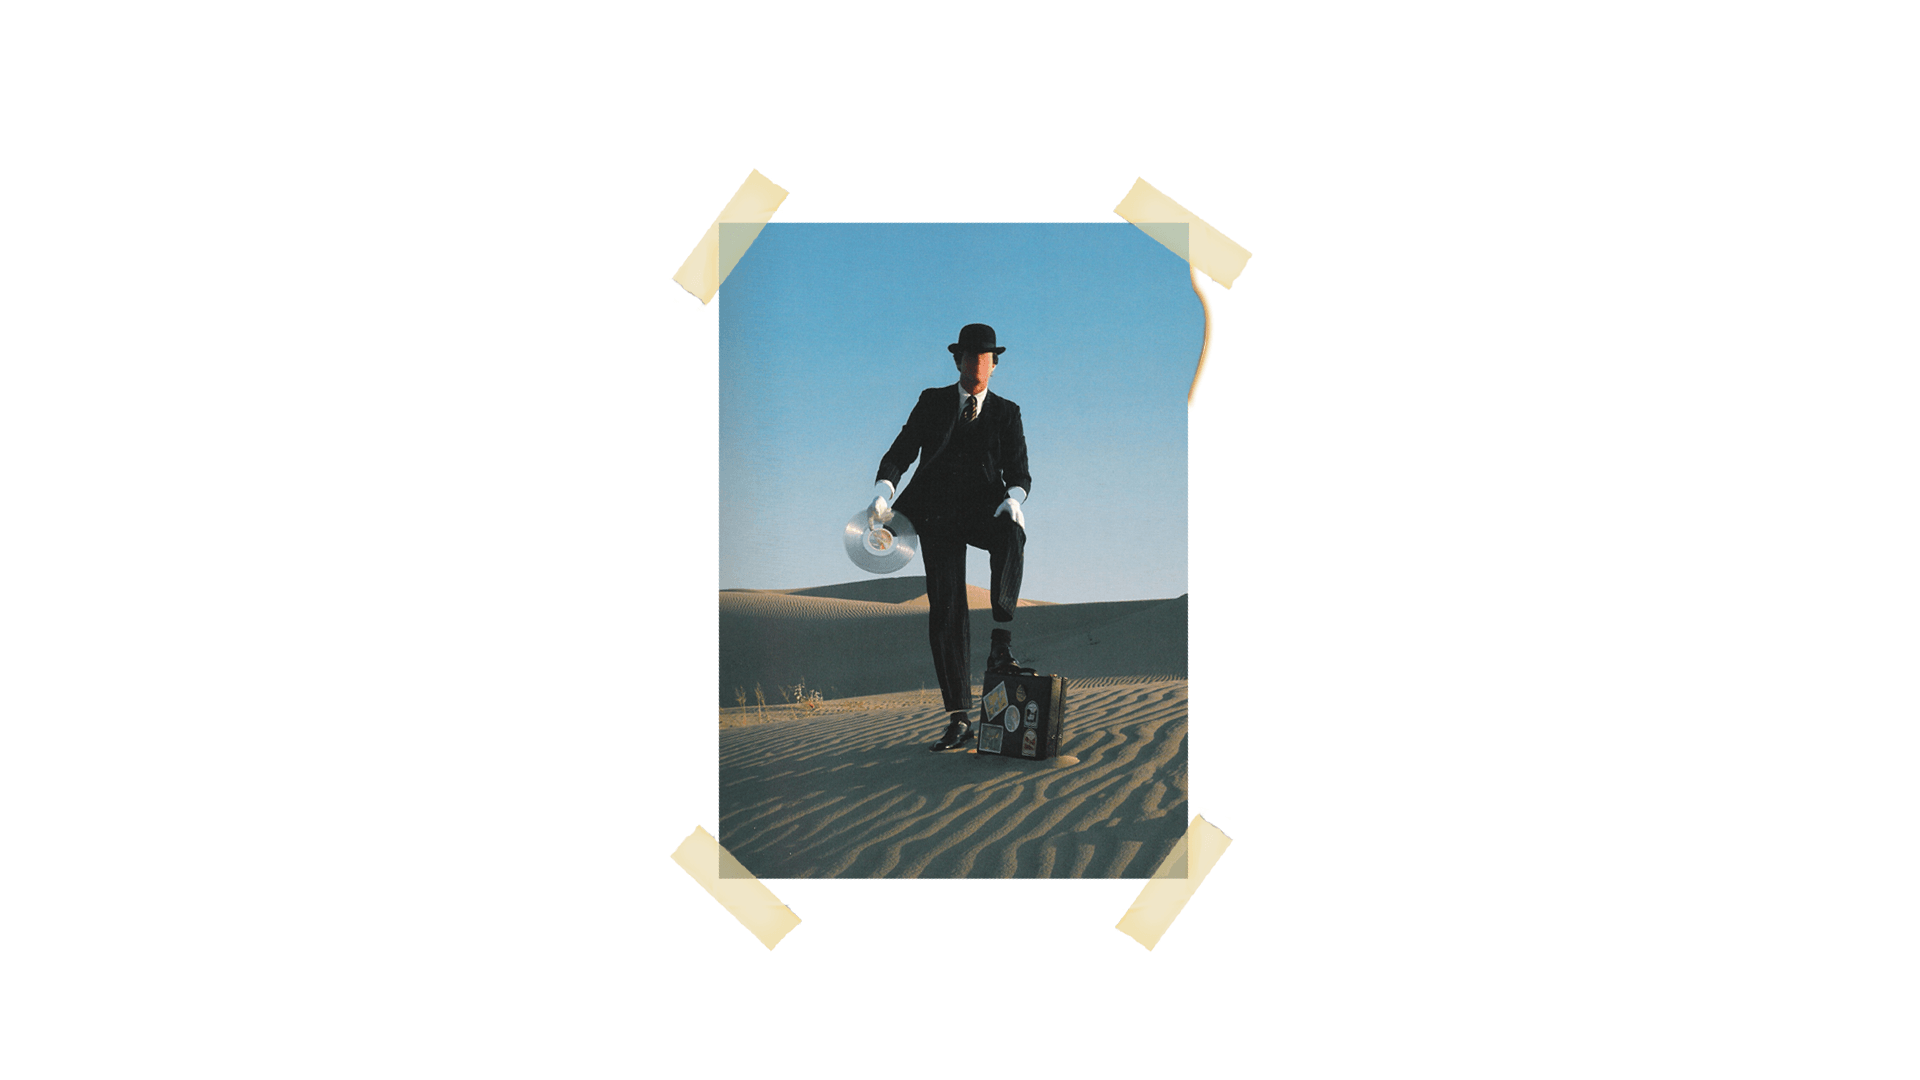 I made this wallpapers based off the Wish You Were Here album cover